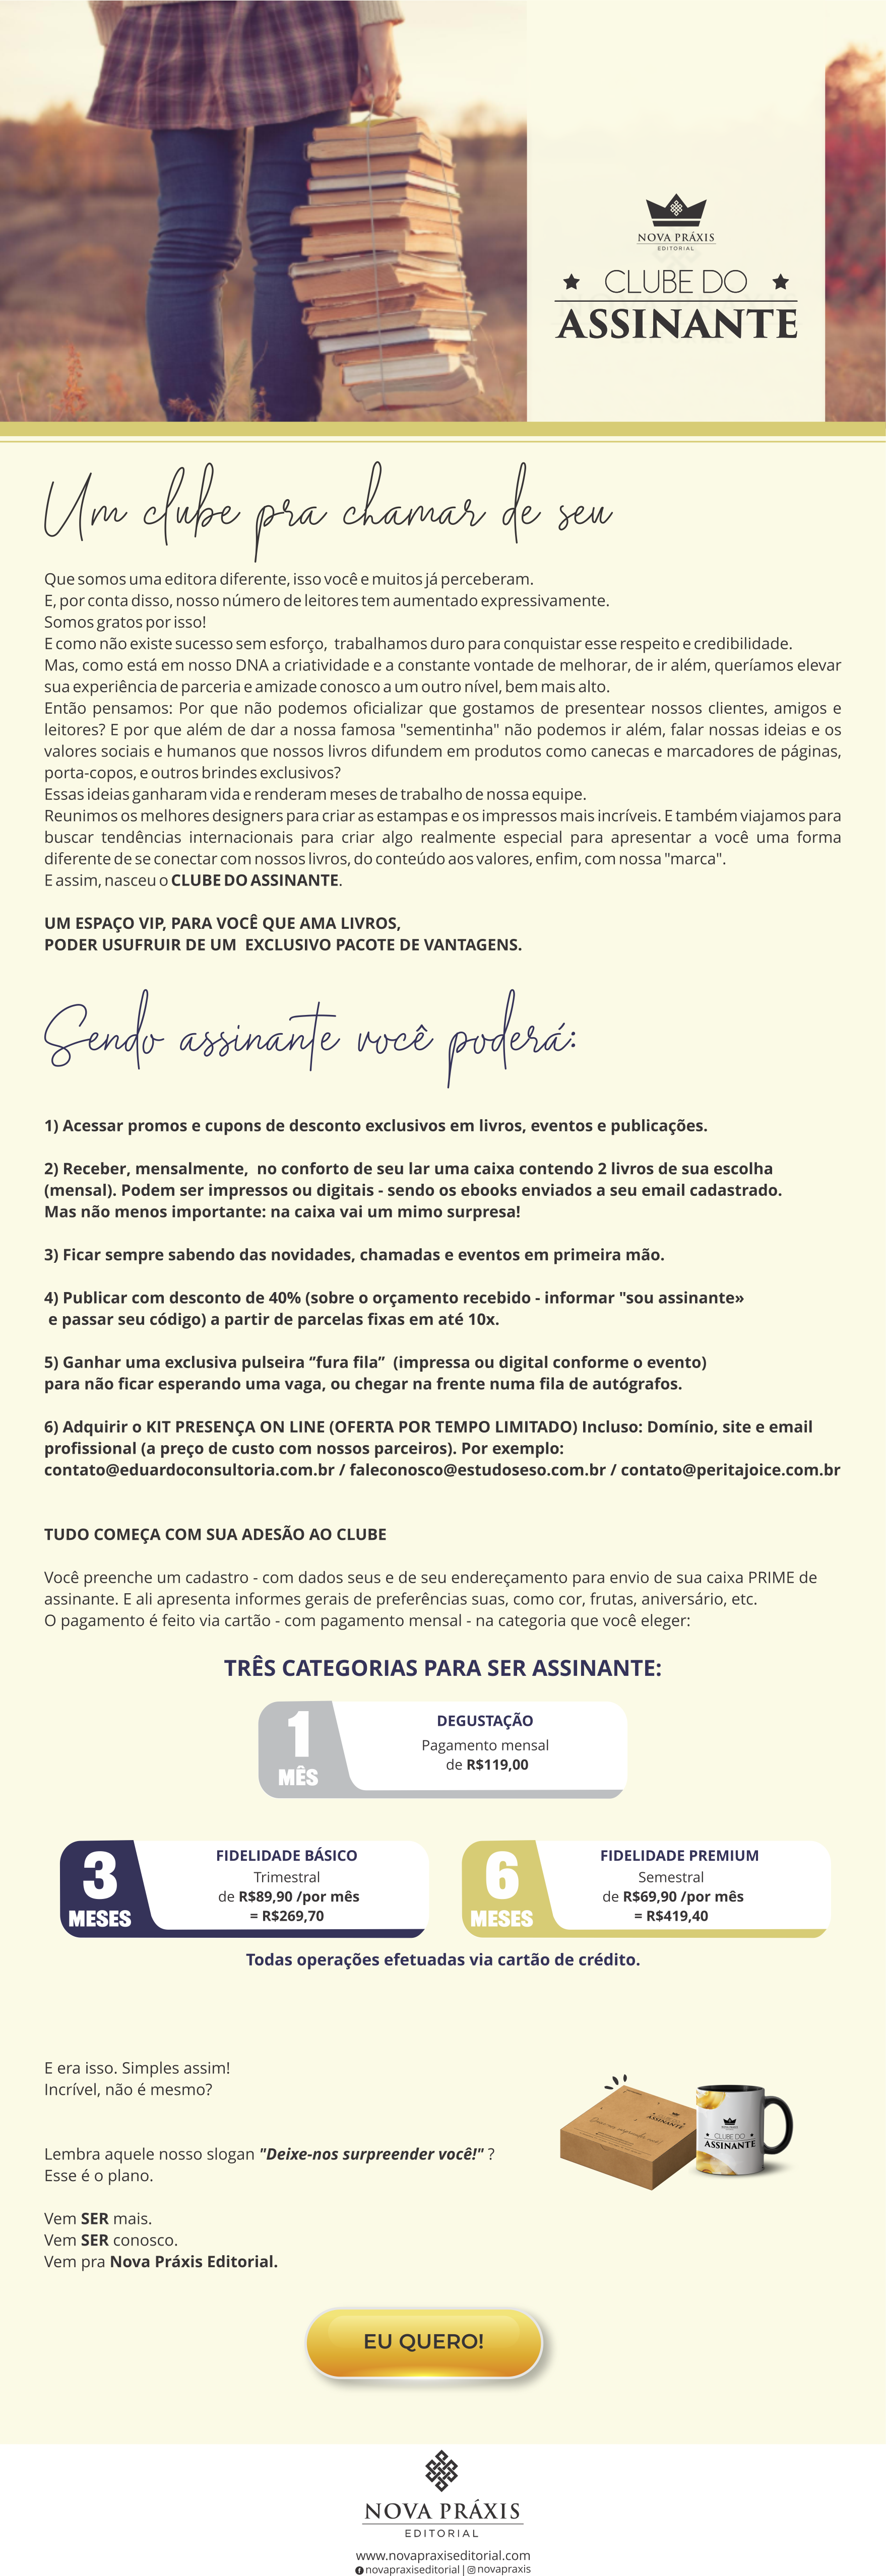 EMAIL CLUBE DO ASSINANTE (1)